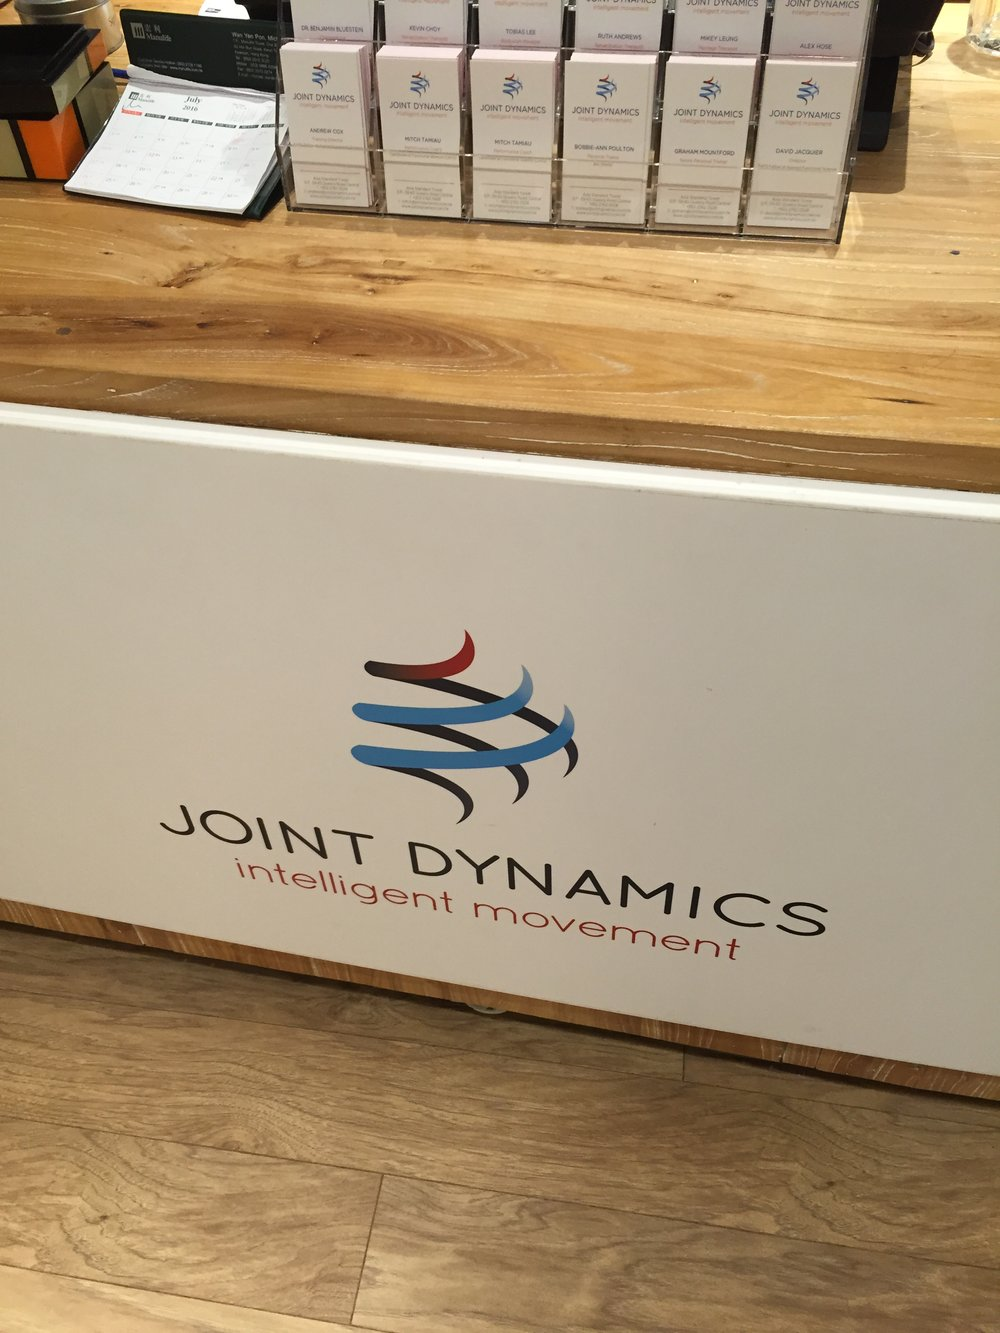 Joint Dynamics Hong Kong